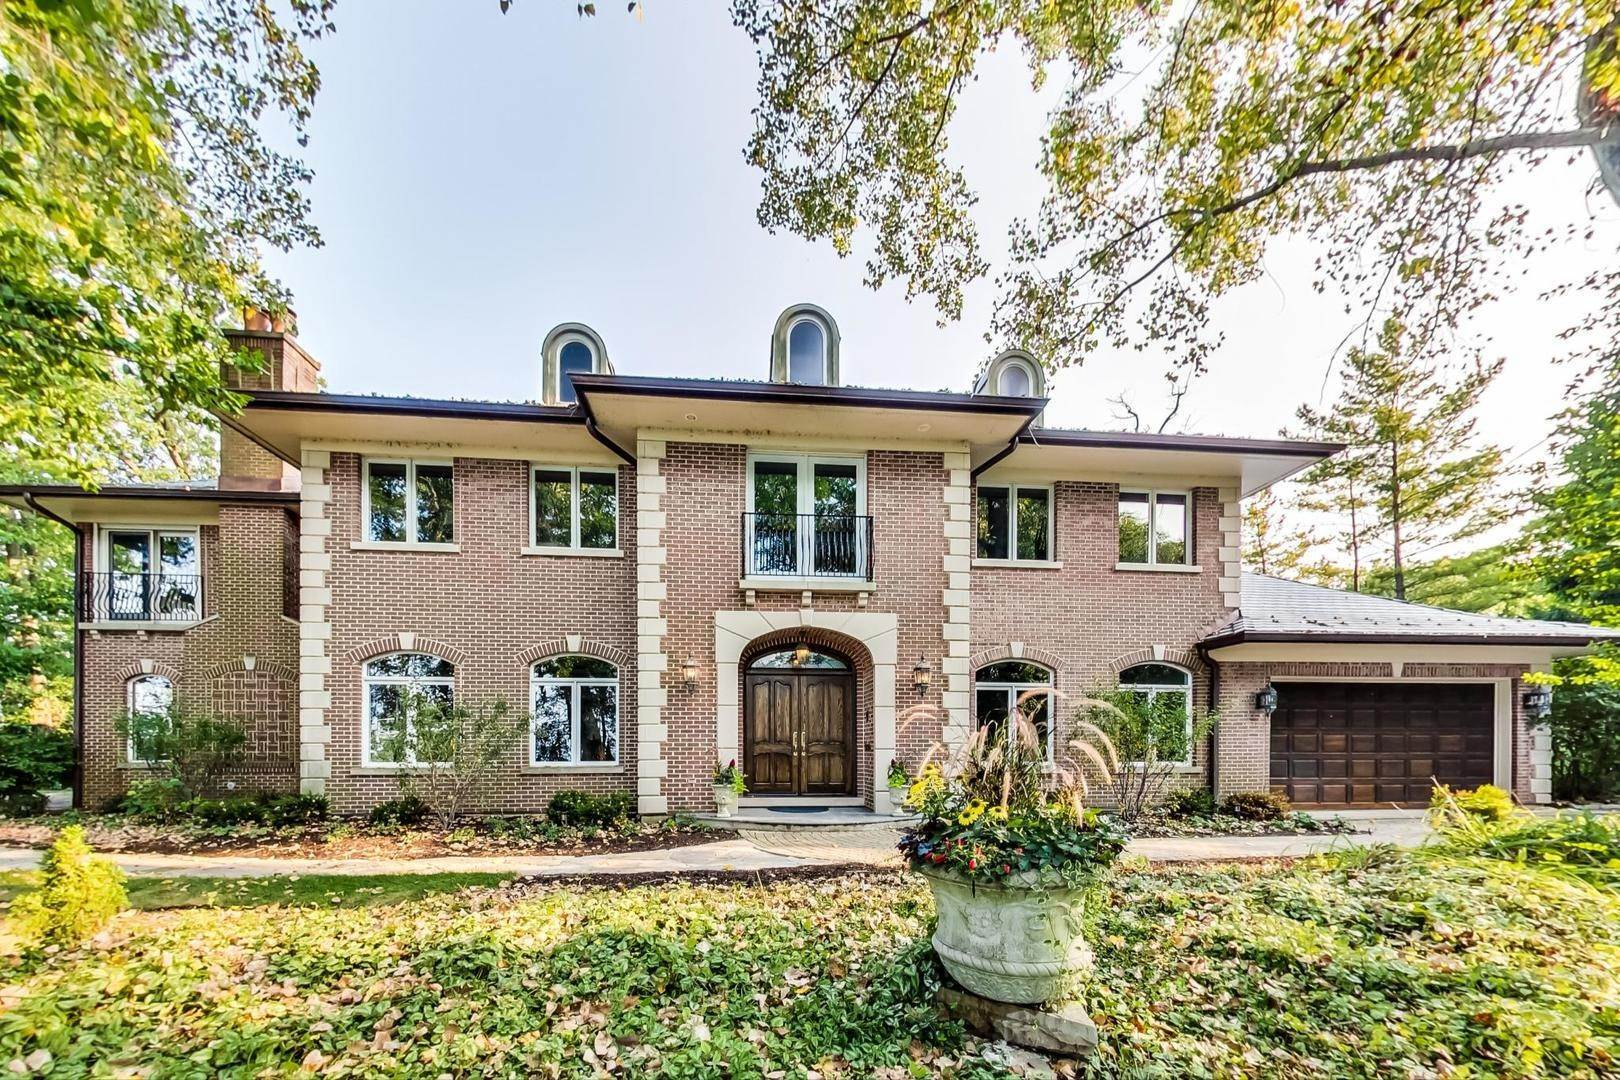 Single Family Homes for Sale at 999 Sheridan Road Highland Park, Illinois 60035 United States